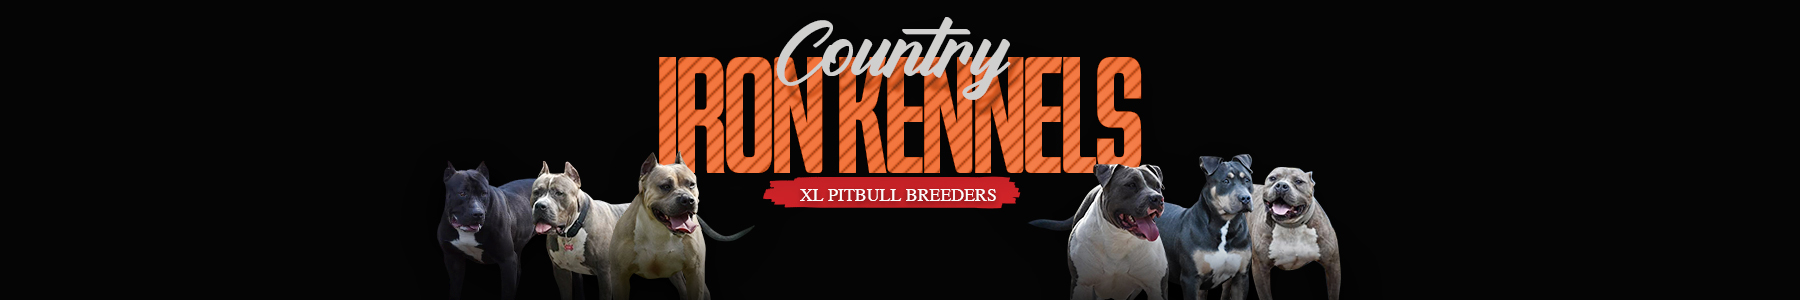 XL Pitbull & American Bully XL Breeders in North Carolina